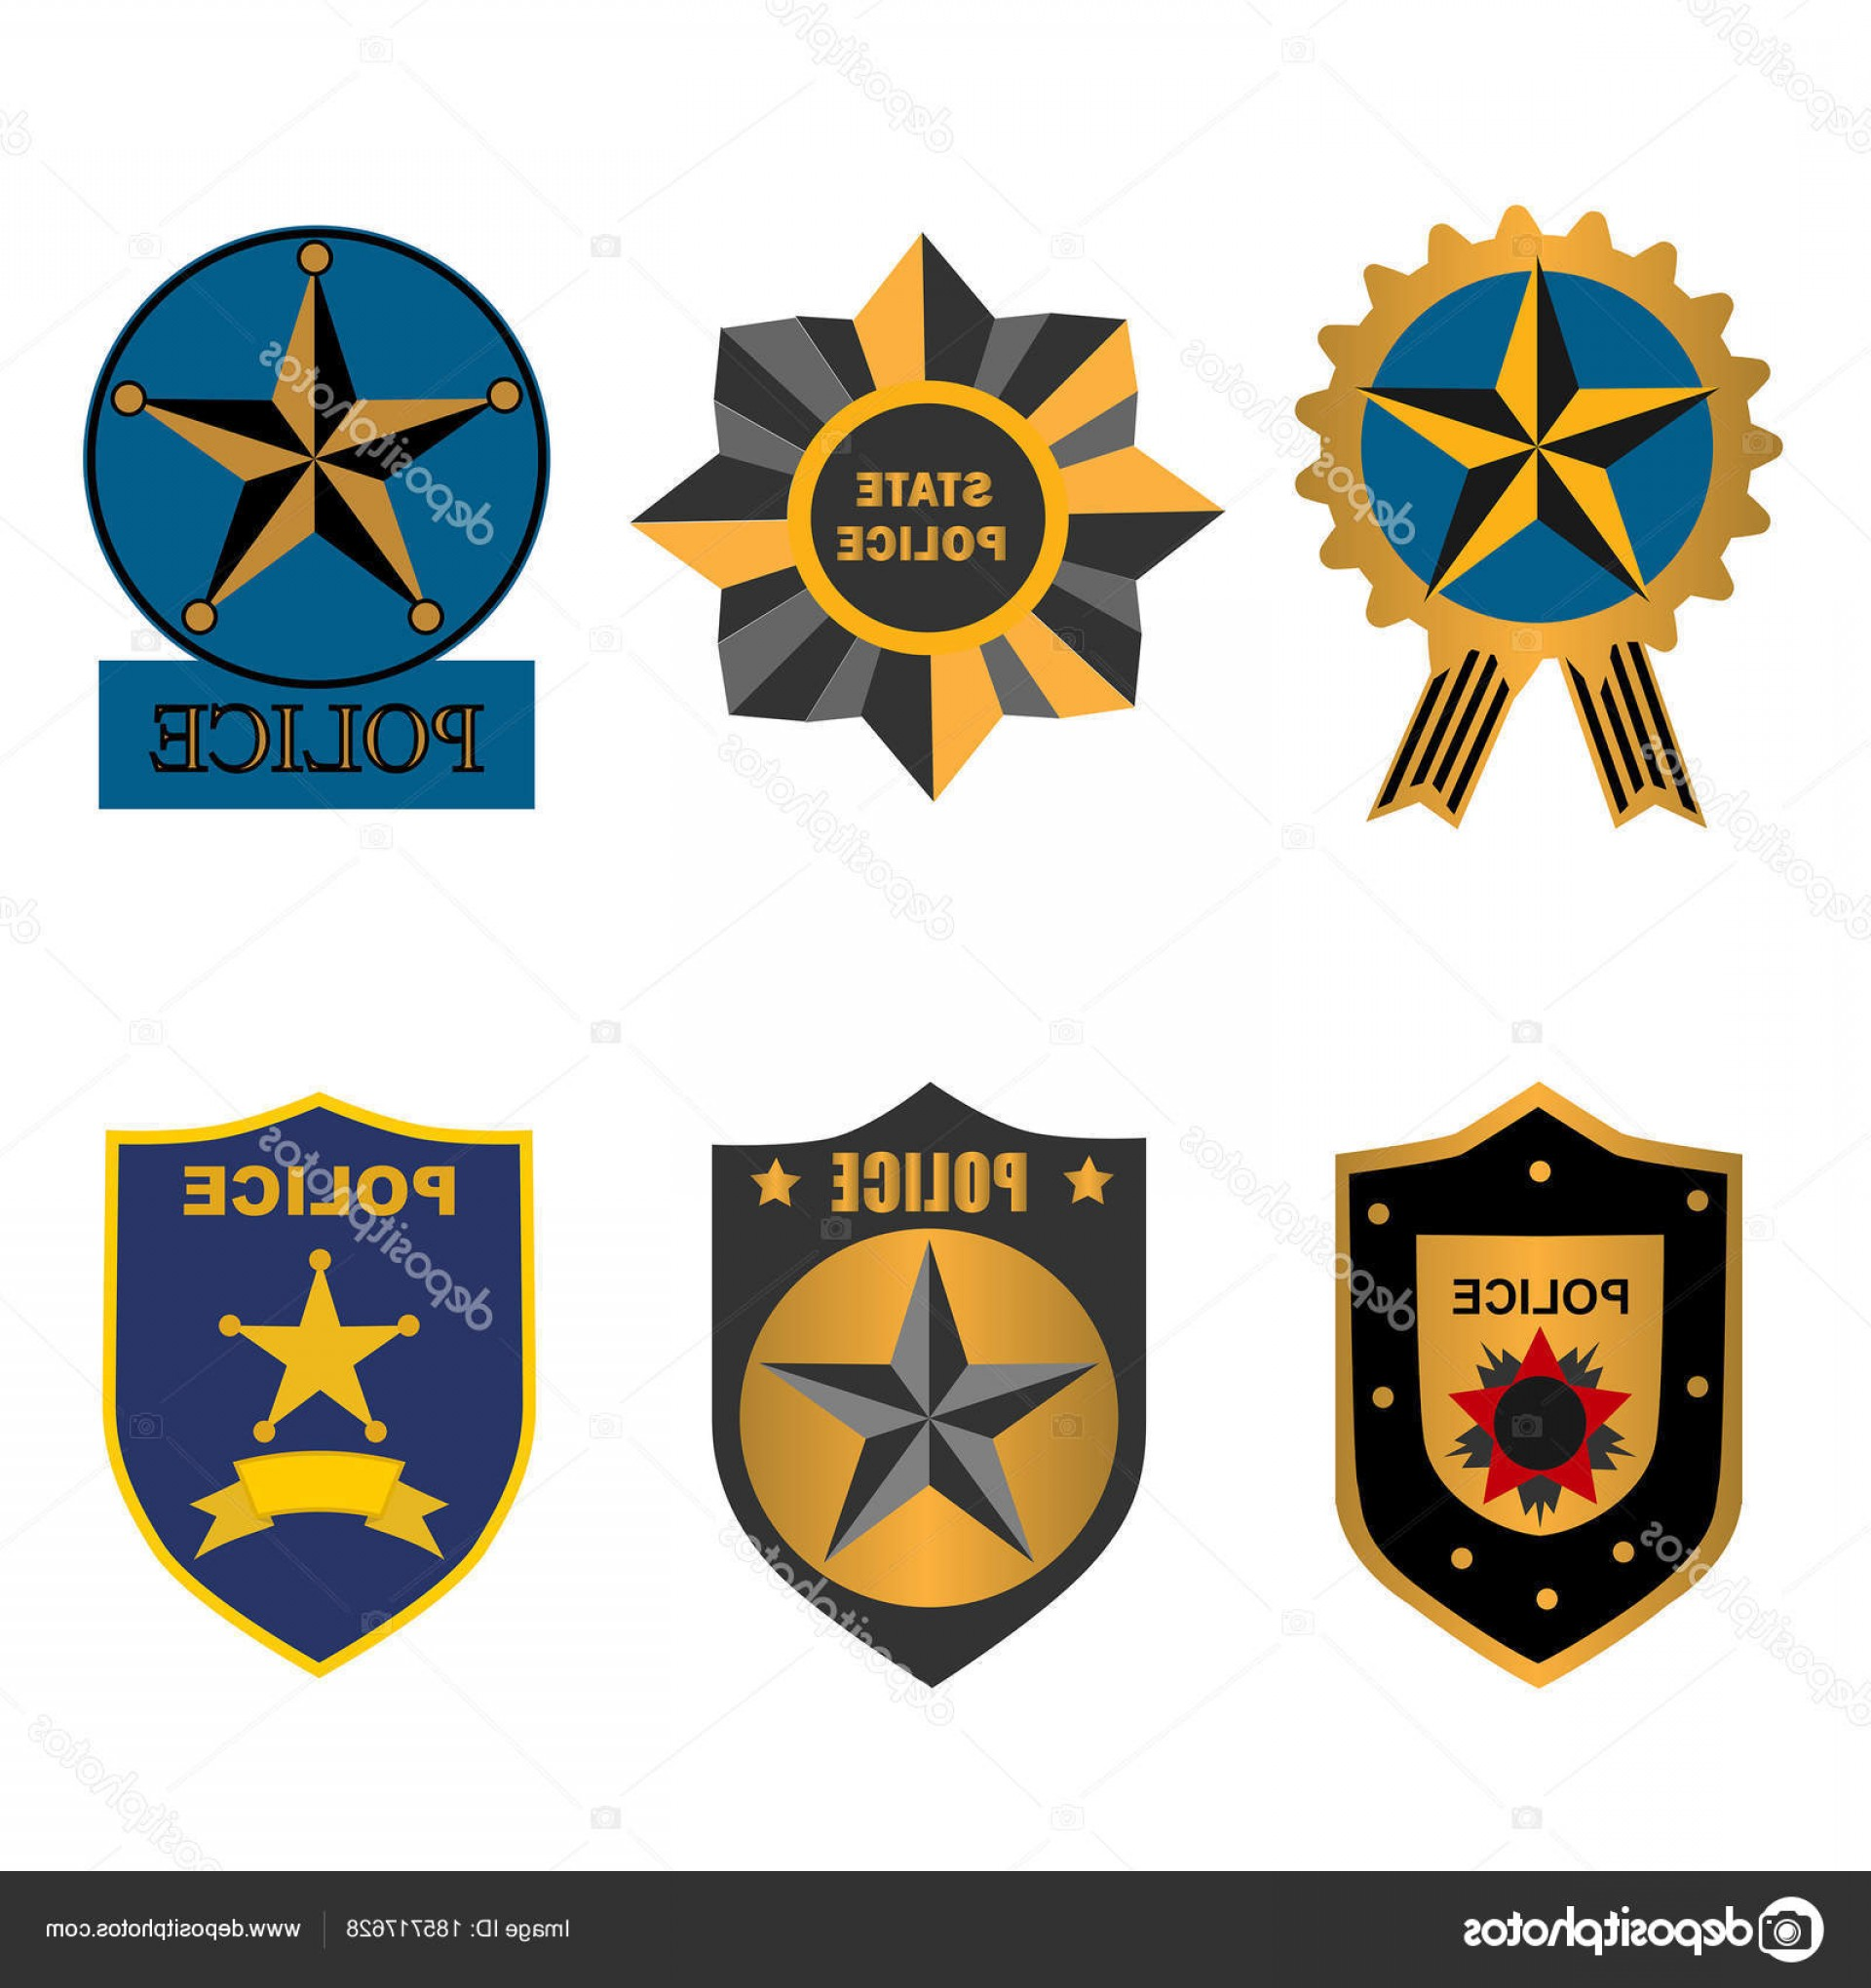 Law Enforcement Badges Vector: Stock Illustration Set Police Law Enforcement Badges